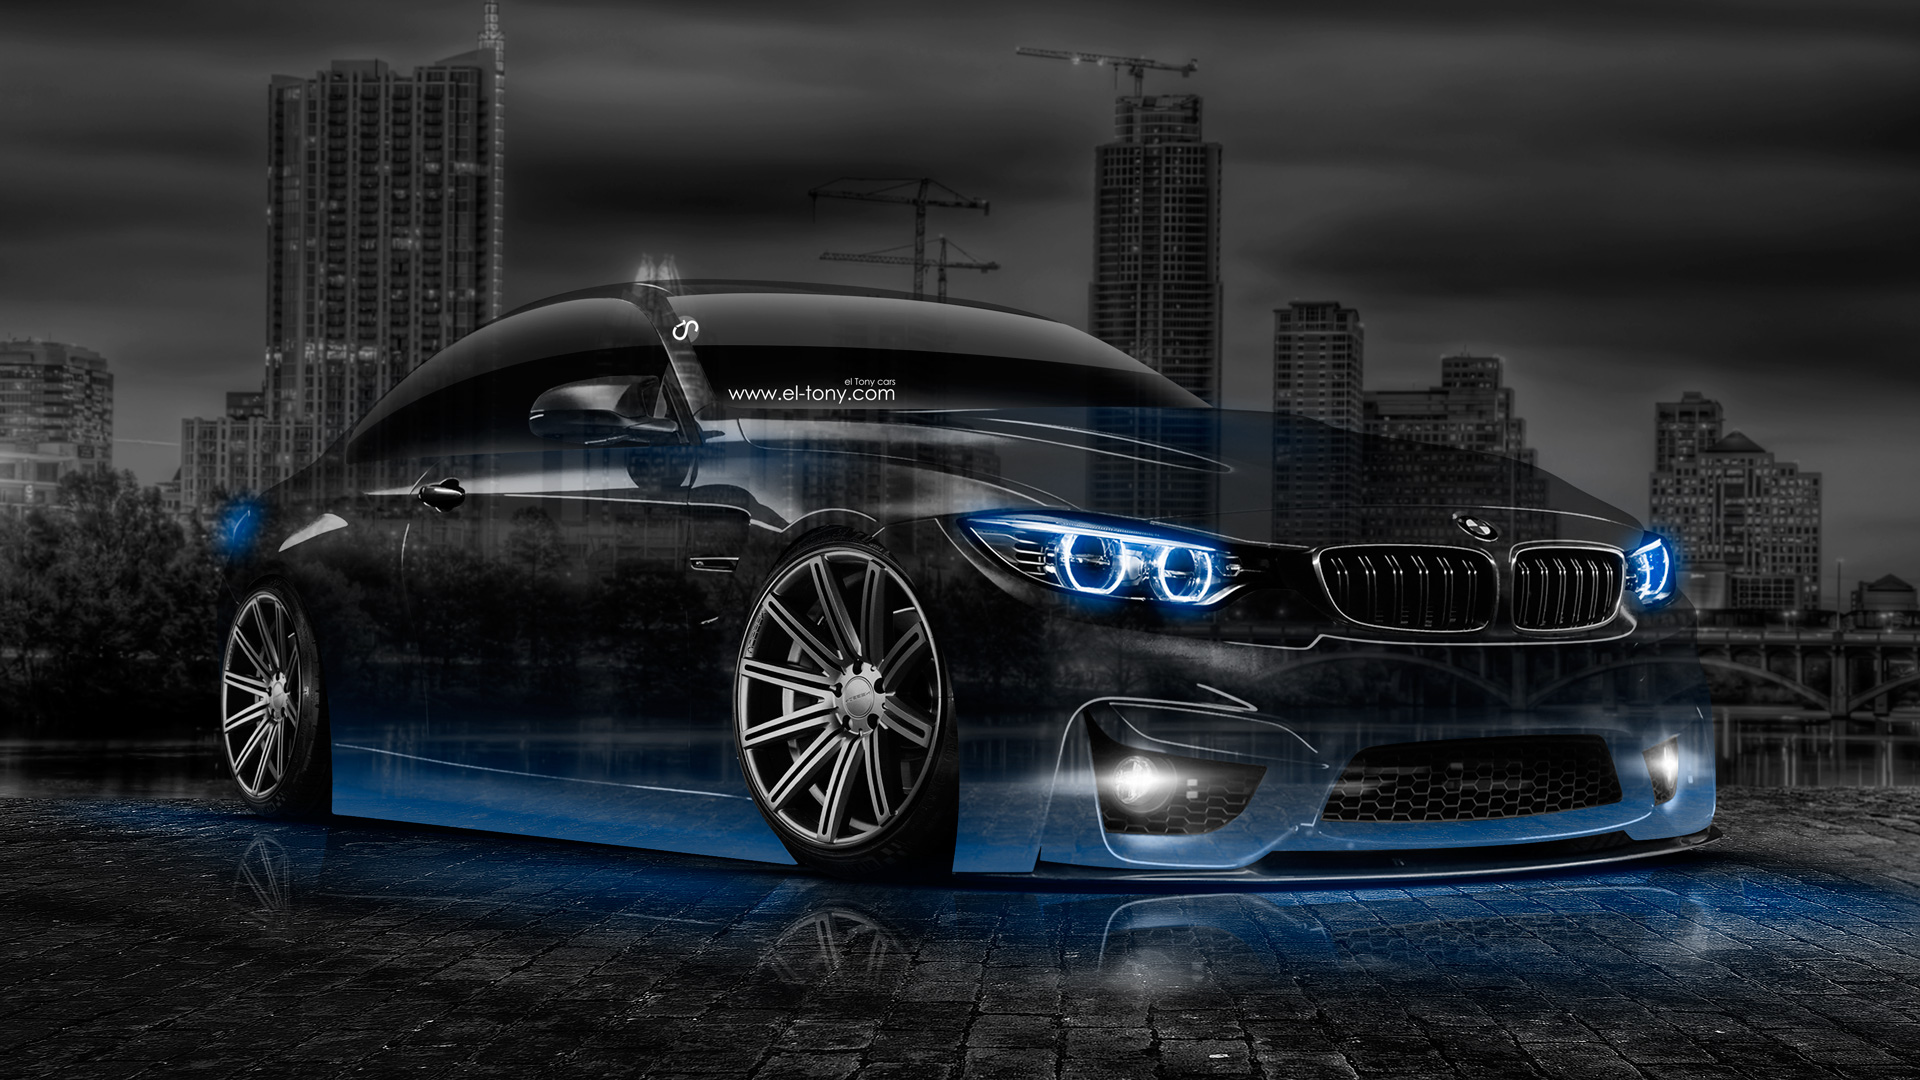 Bmw M4 Crystal City Car 2014 Blue Neon Hd Wallpapers Design By Tony